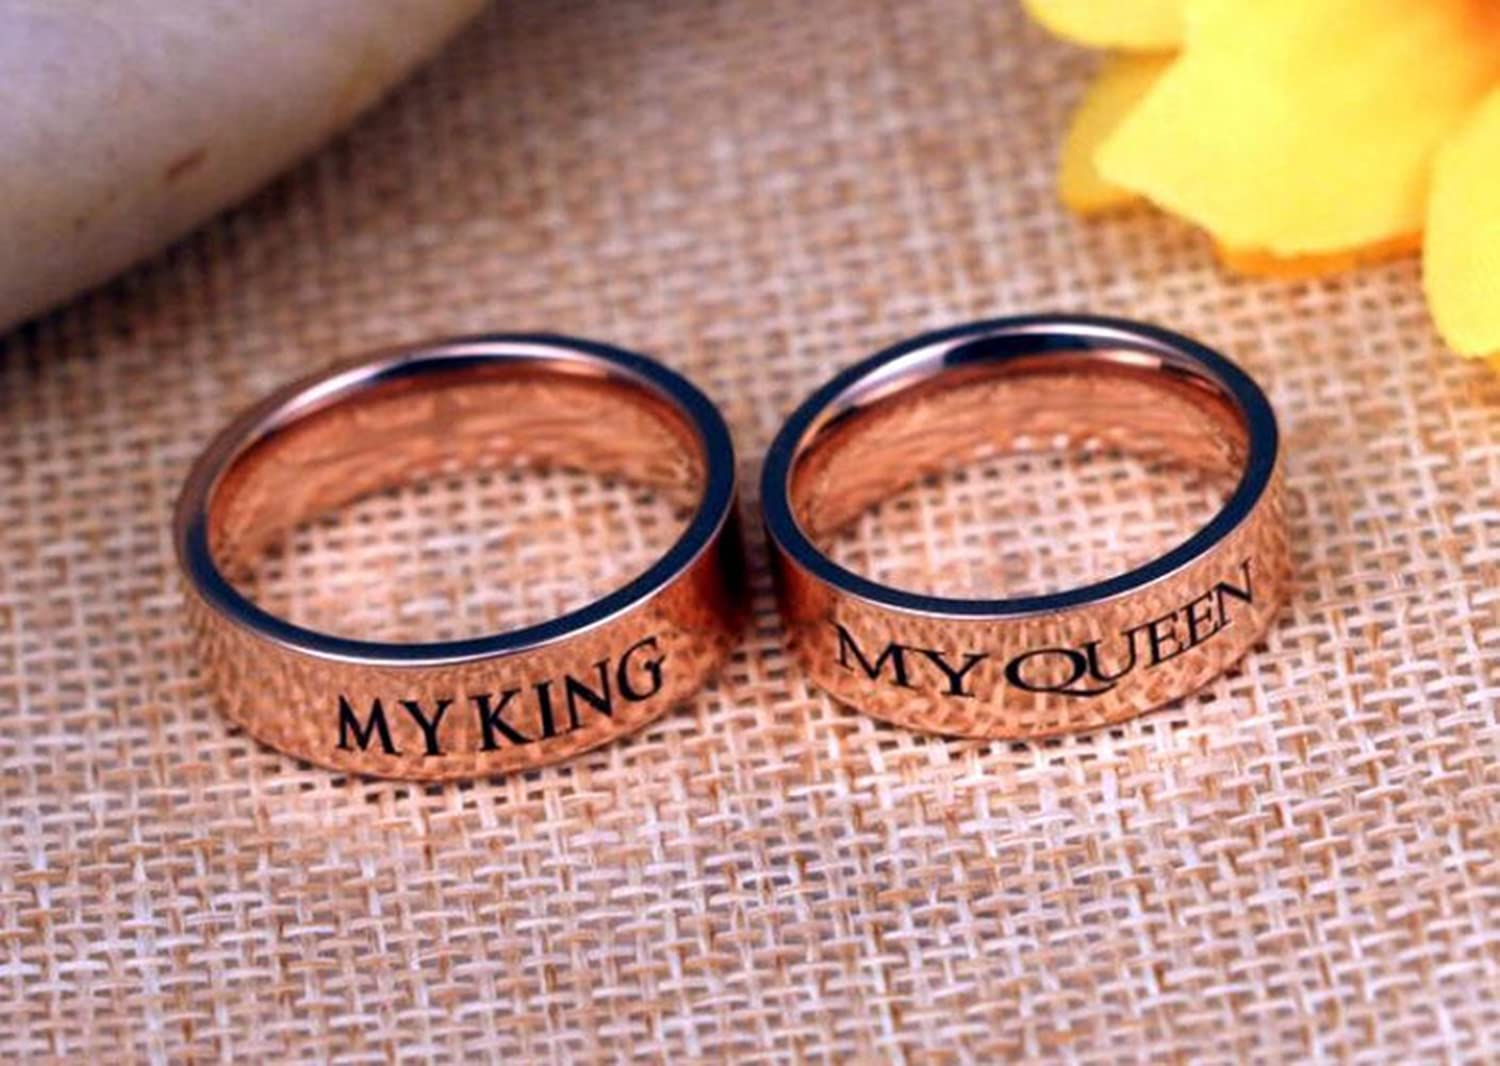 Wedding Band MY KING MY QUEEN Ring, Stainless Steel Wedding Band Set ...